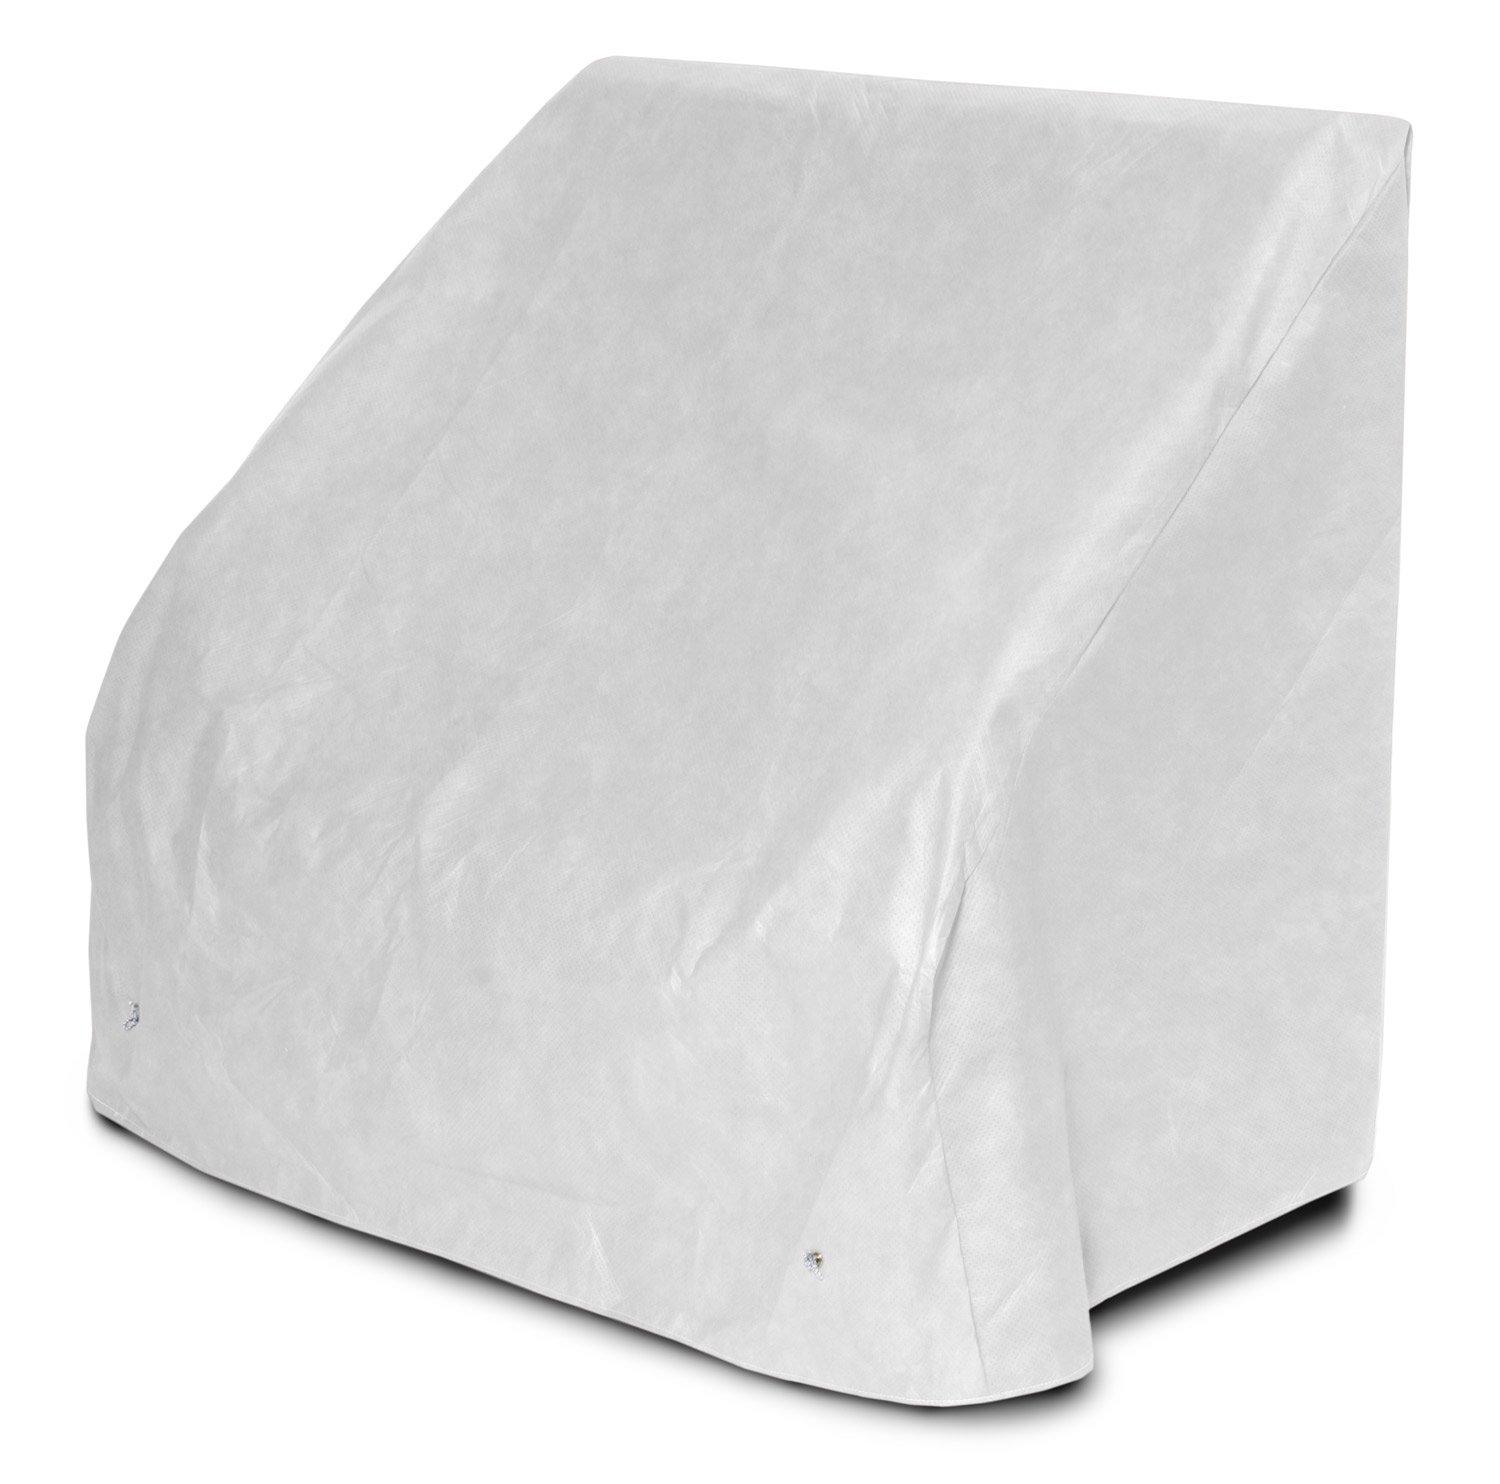 KoverRoos DuPont Tyvek 24204 5-Feet Bench/Glider Cover, 75-Inch Width by 28-Inch Diameter by 37-Inch Height, White by KOVERROOS (Image #1)